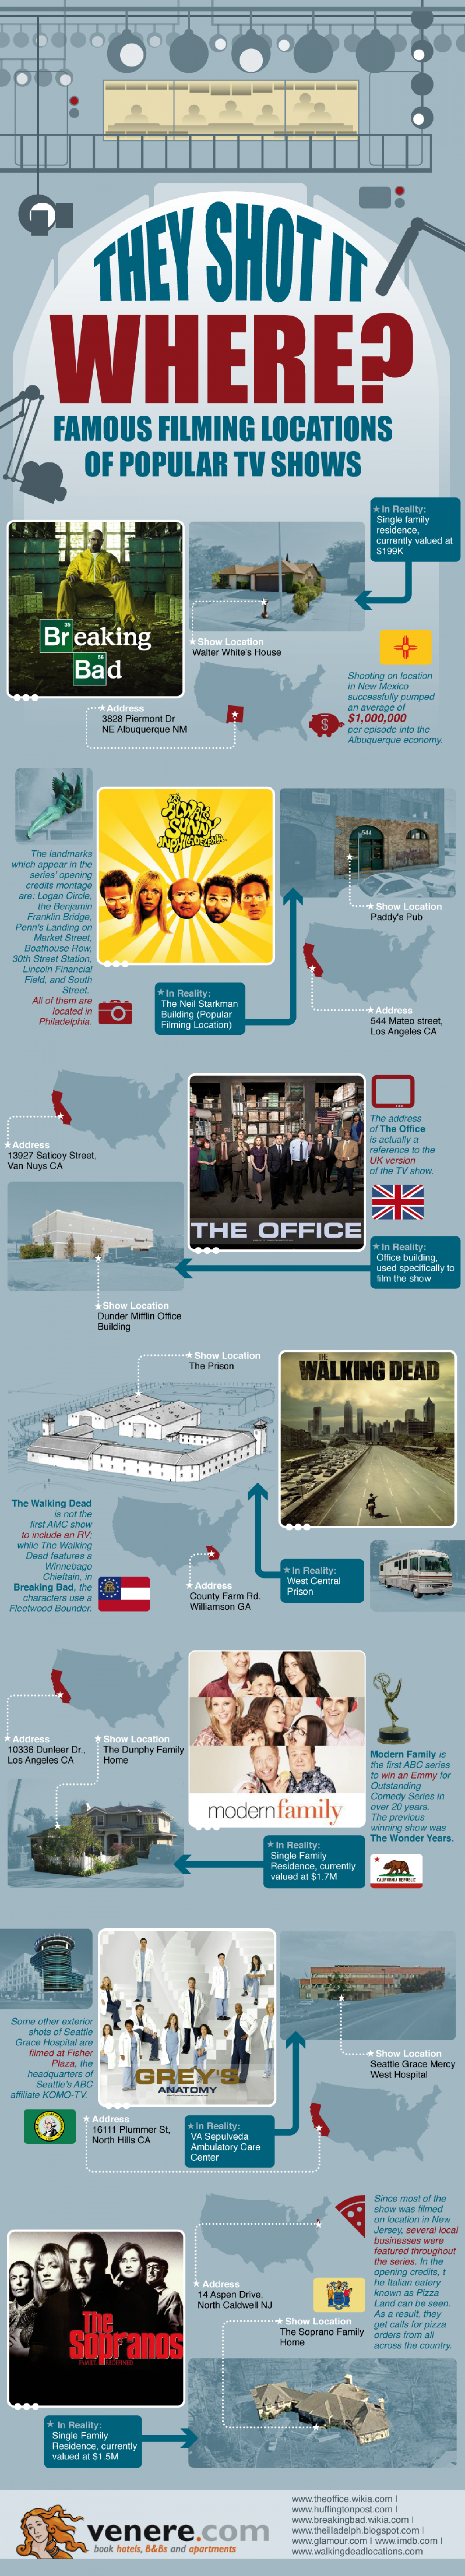 They Shot It Where? Famous Filming Locations Of Popular TV Shows Infographic